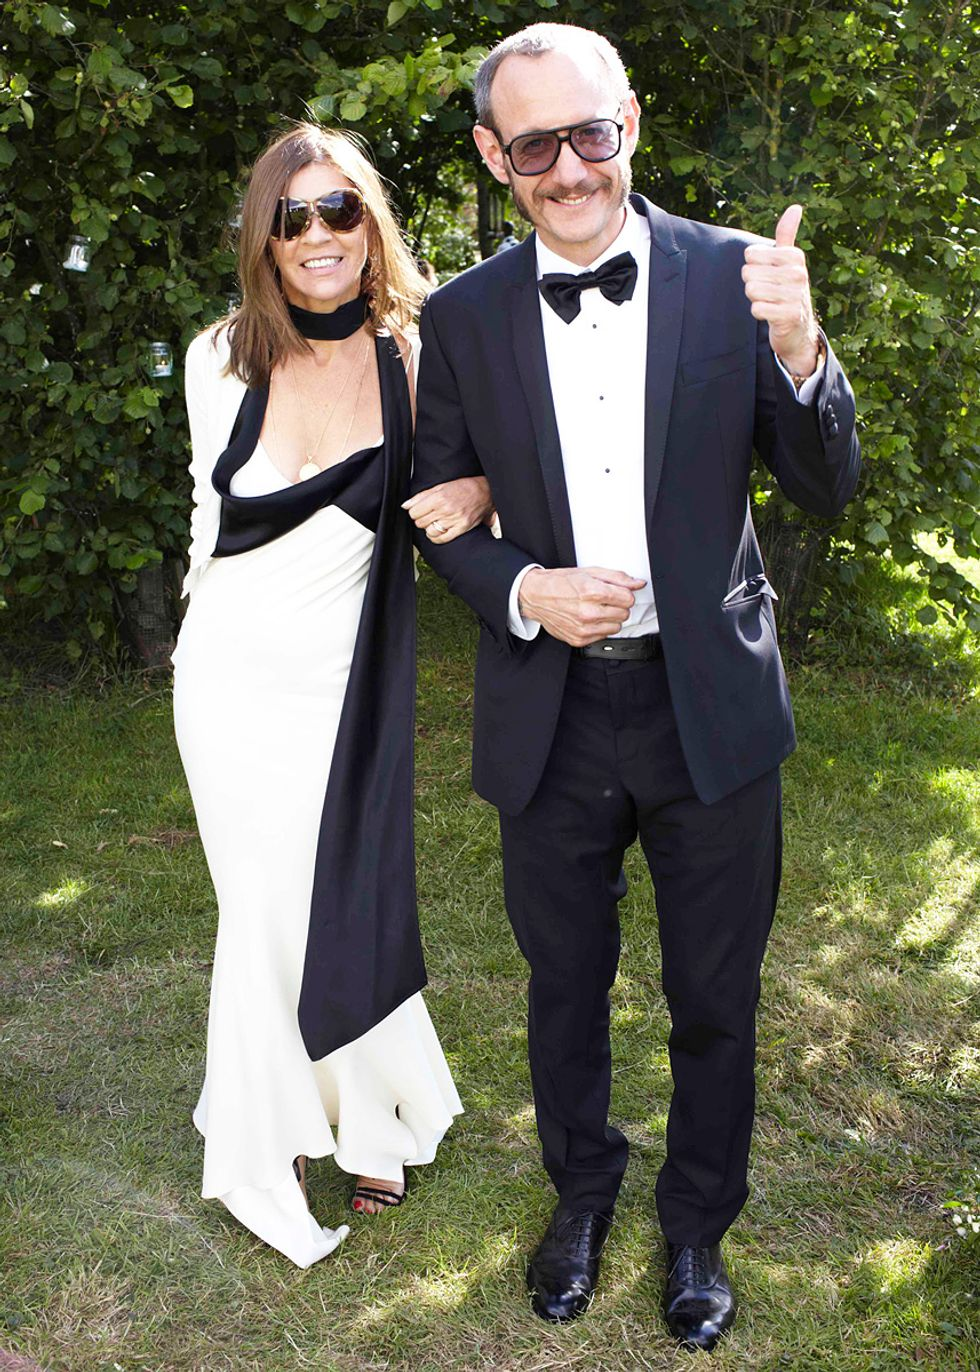 Mr. Mickey's 6 Favorite Photos from Kate Moss's Wedding